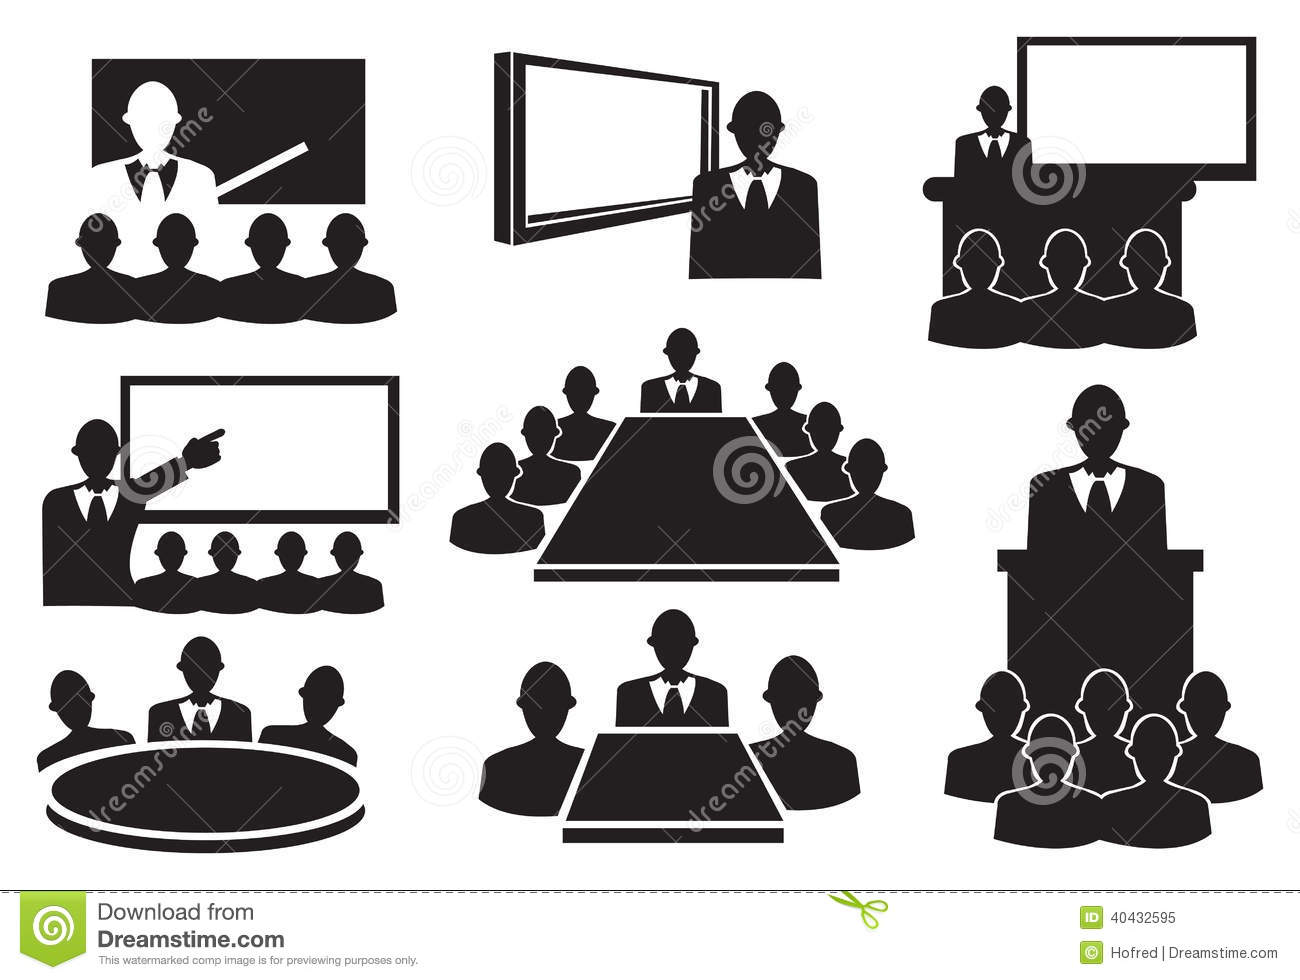 Business meeting clipart black and white